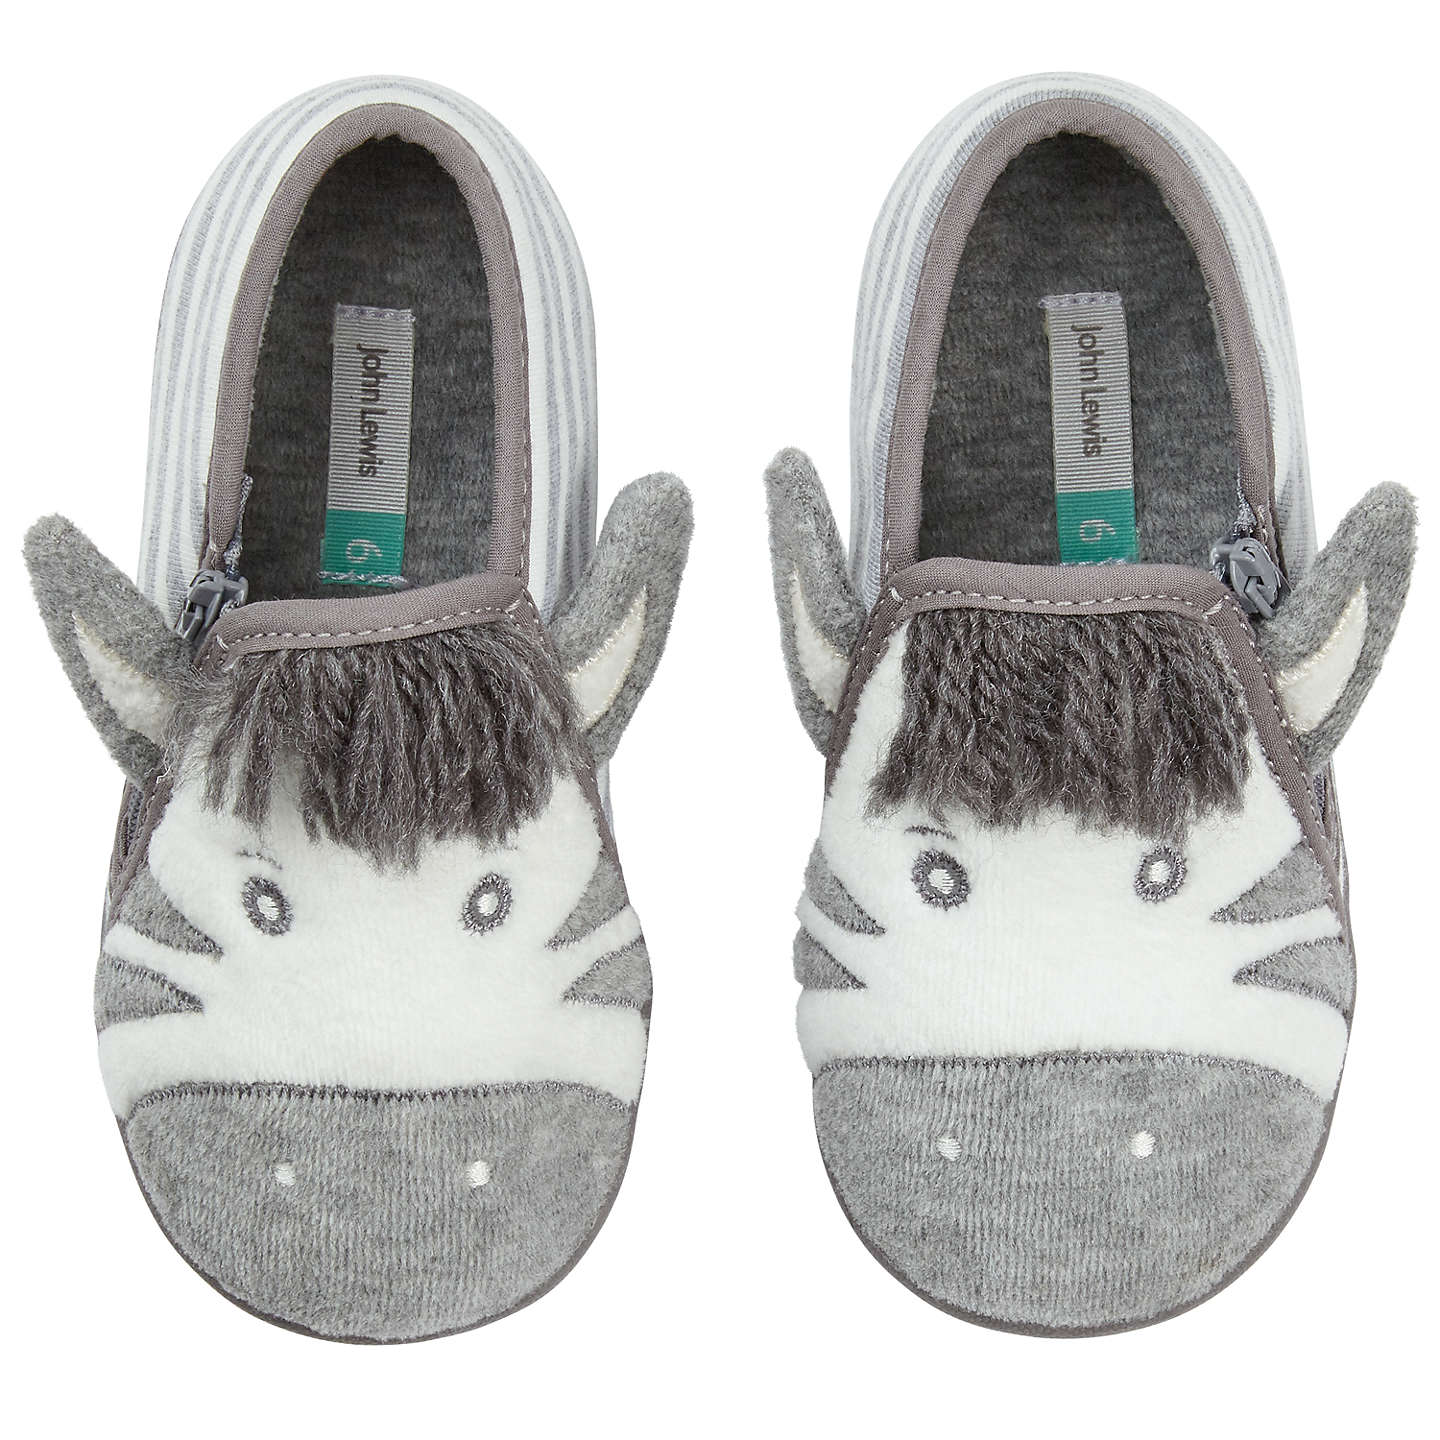 BuyJohn Lewis Baby Zebra Slippers, Grey, 3 Jnr Online at johnlewis.com